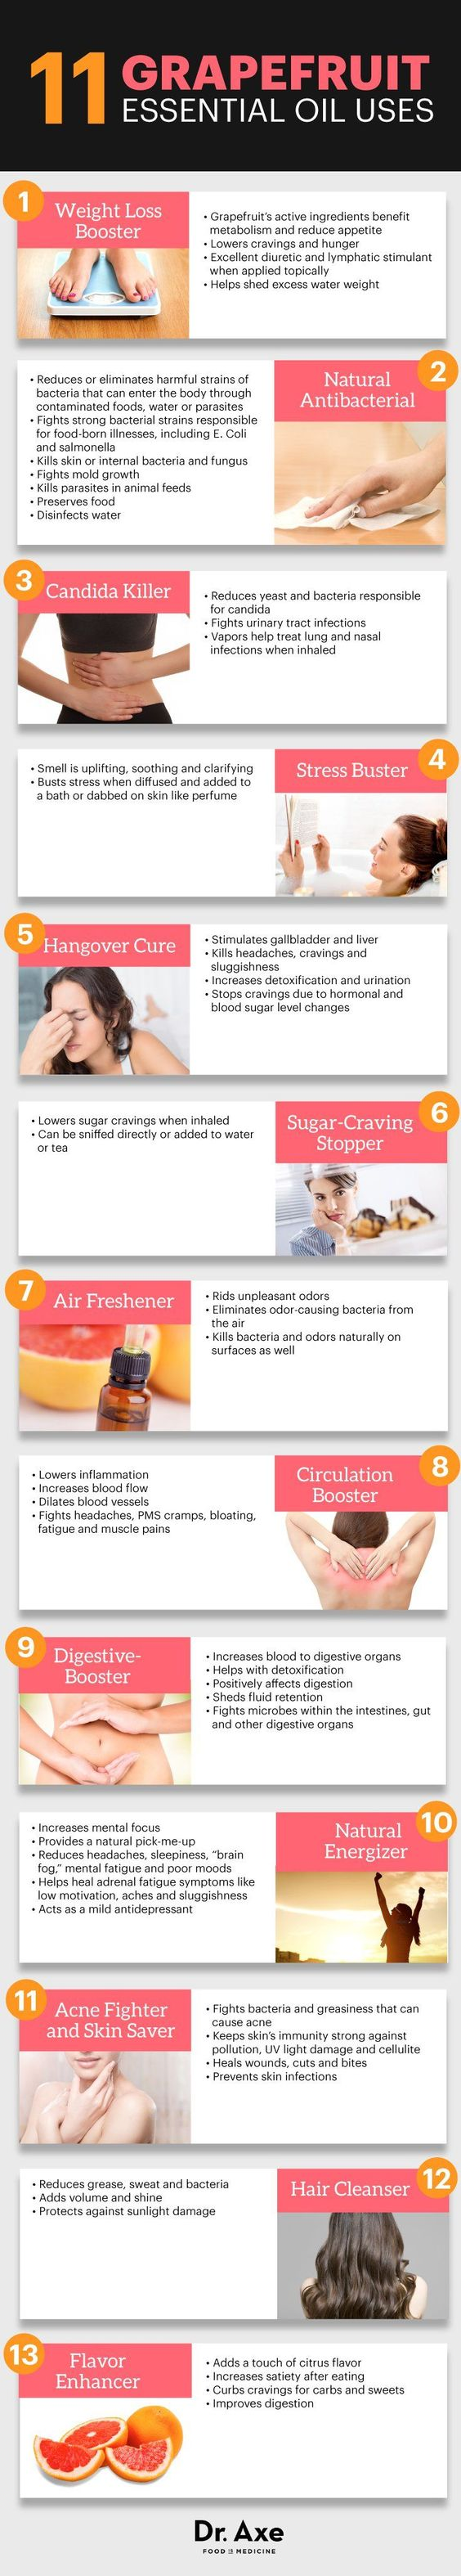 Essential Oils for Weightloss